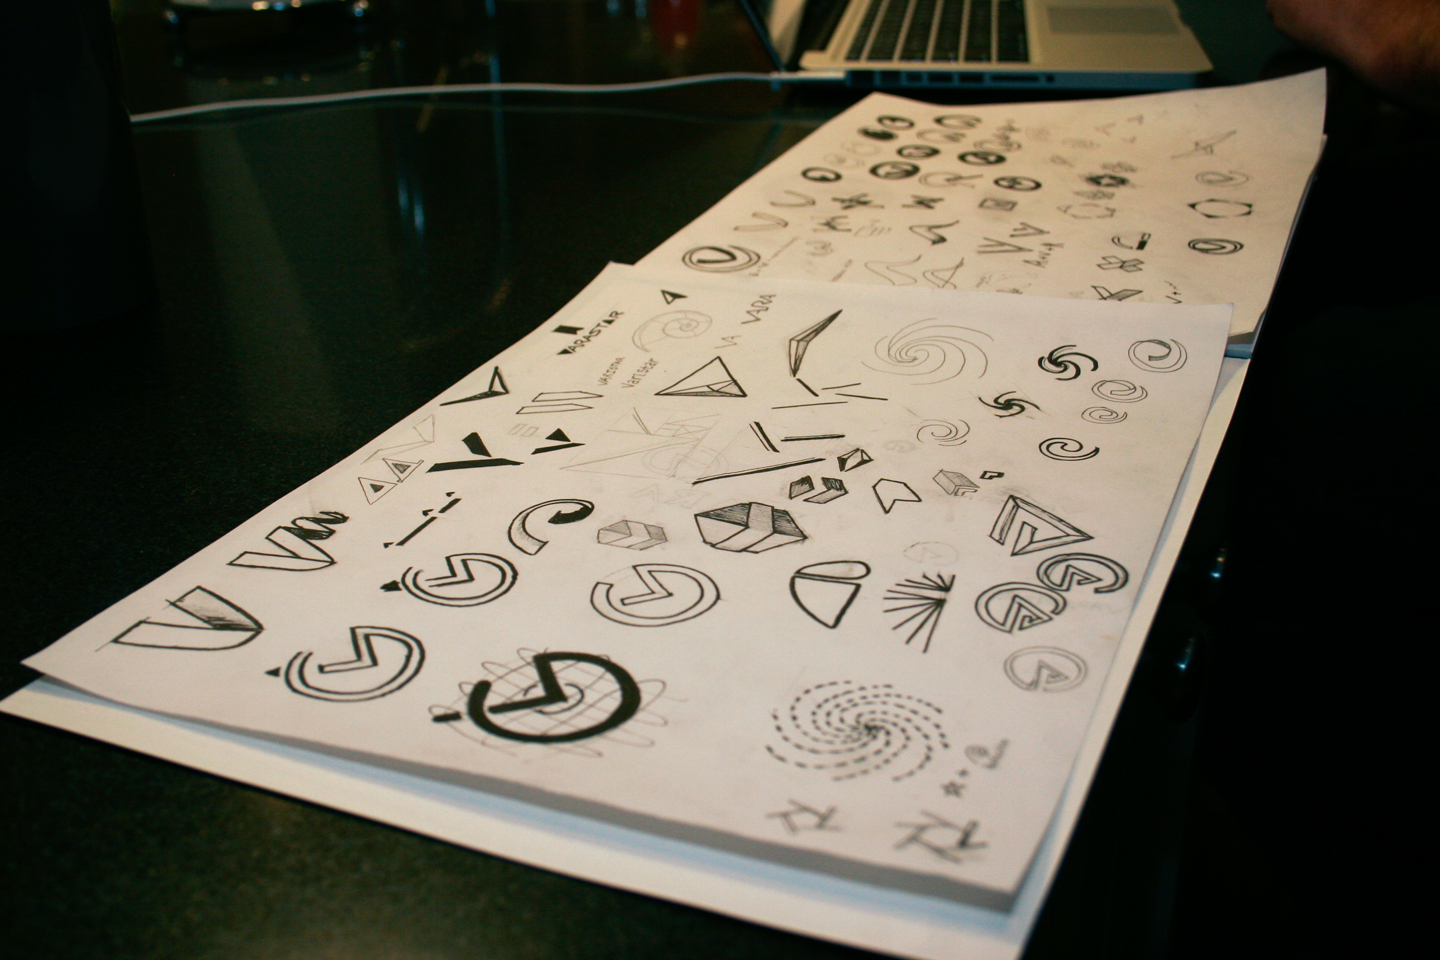 Sketchbook pages displaying hand-drawn logo concepts for Varistar